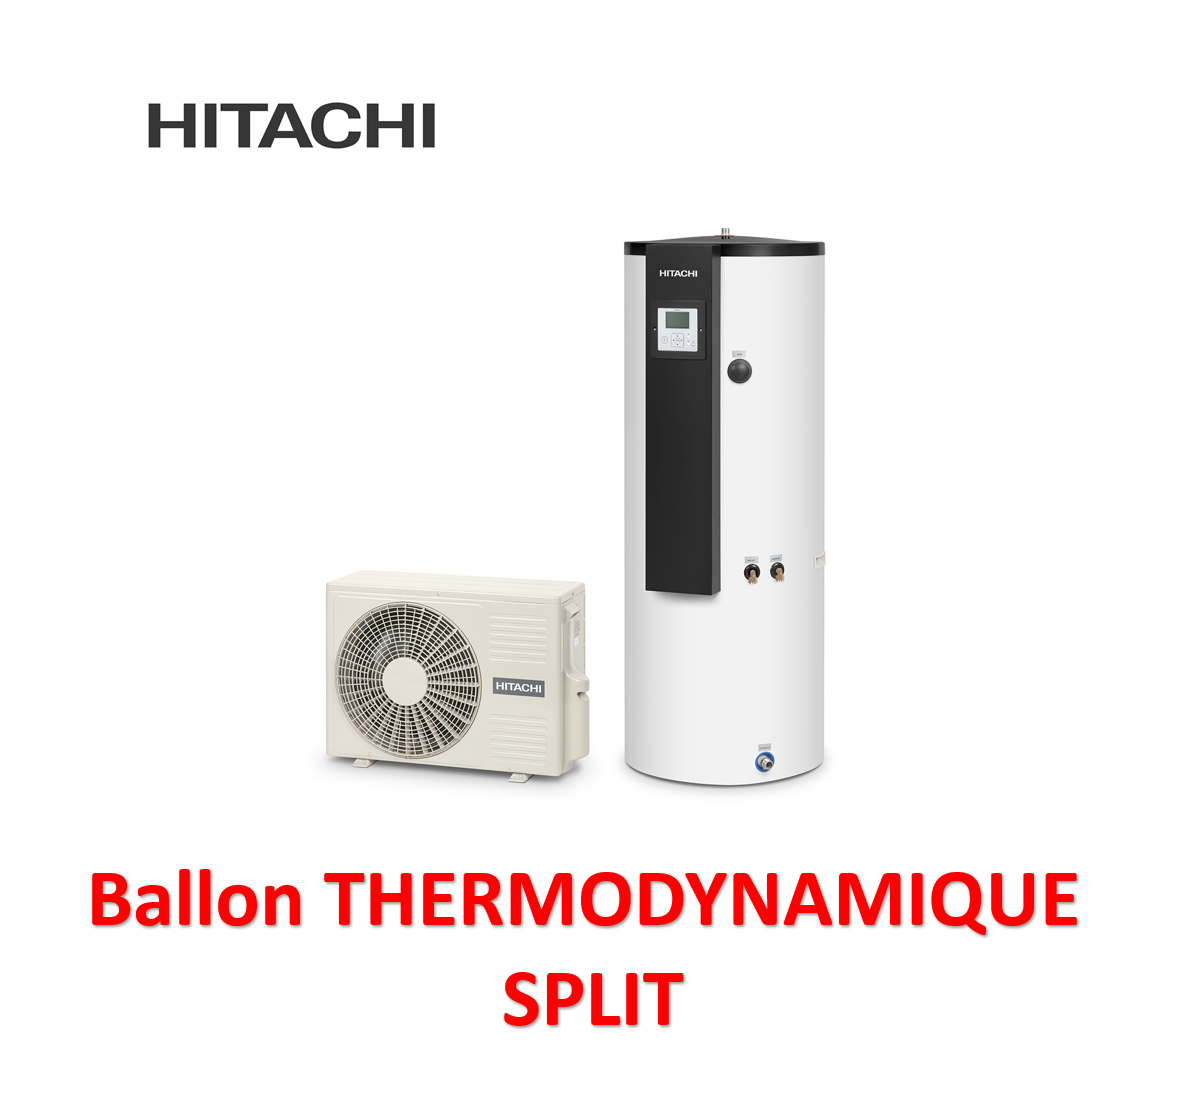 Ballon THERMODYNAMIQUE SPLIT